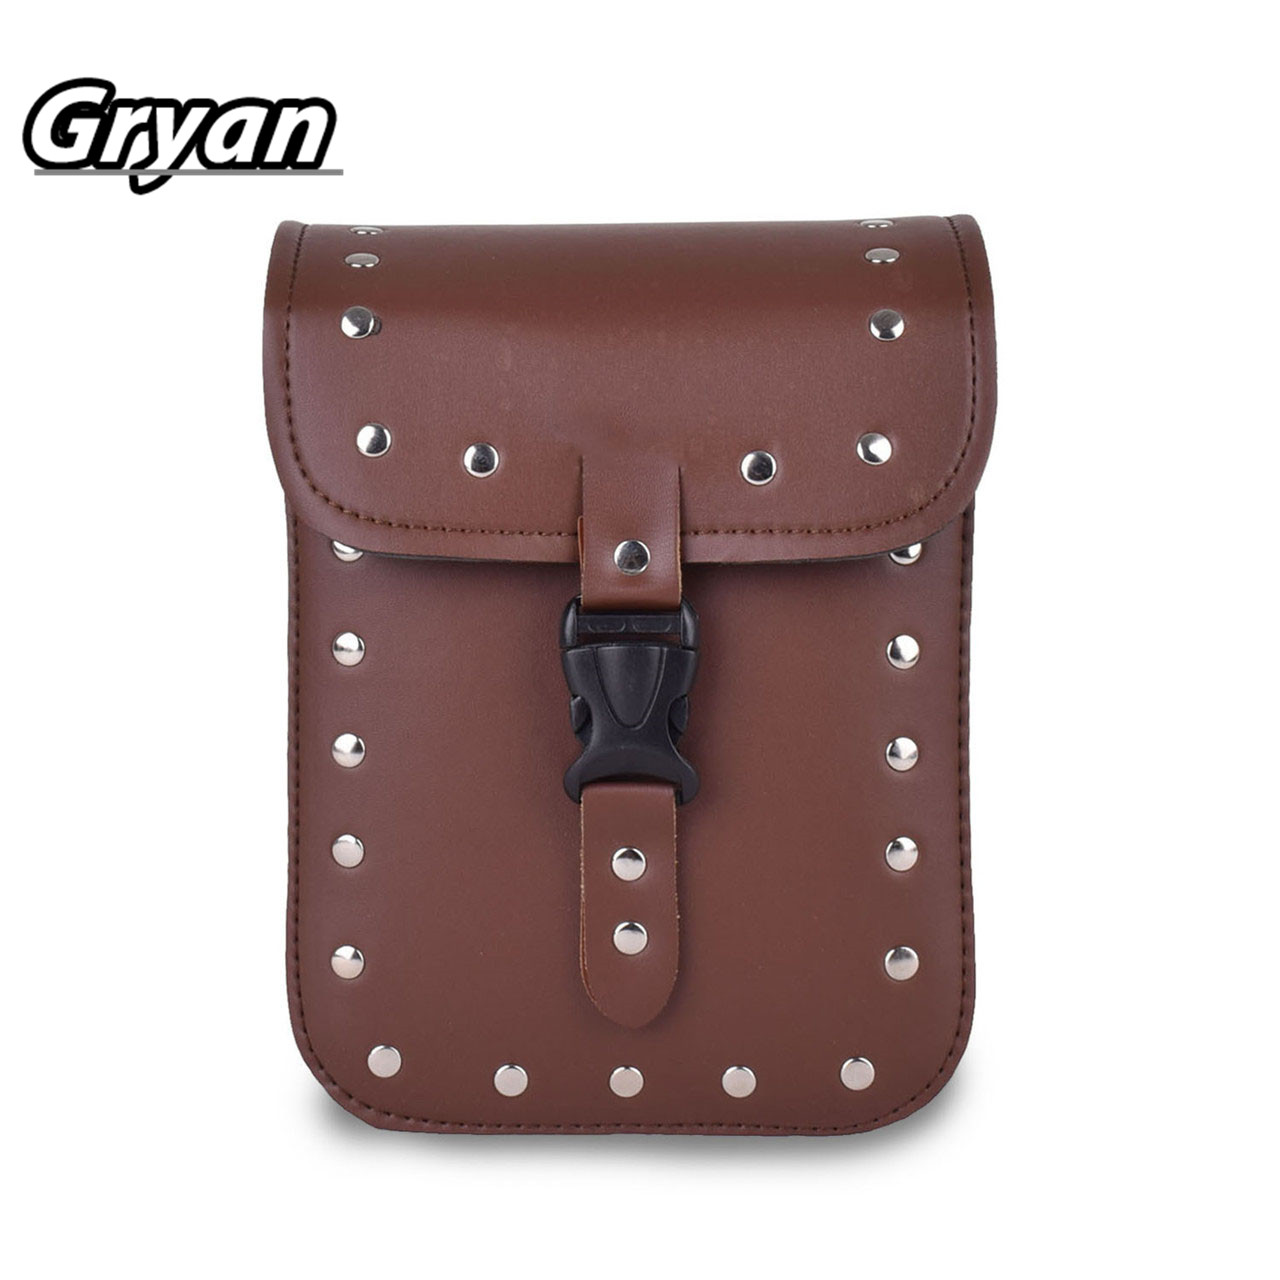 19*11*24cm  Motorcycle Saddle Bags Cruiser Vehicle Leather Motorbike Side Tool Tail Head Bag Luggage Borsello Moto For Harley